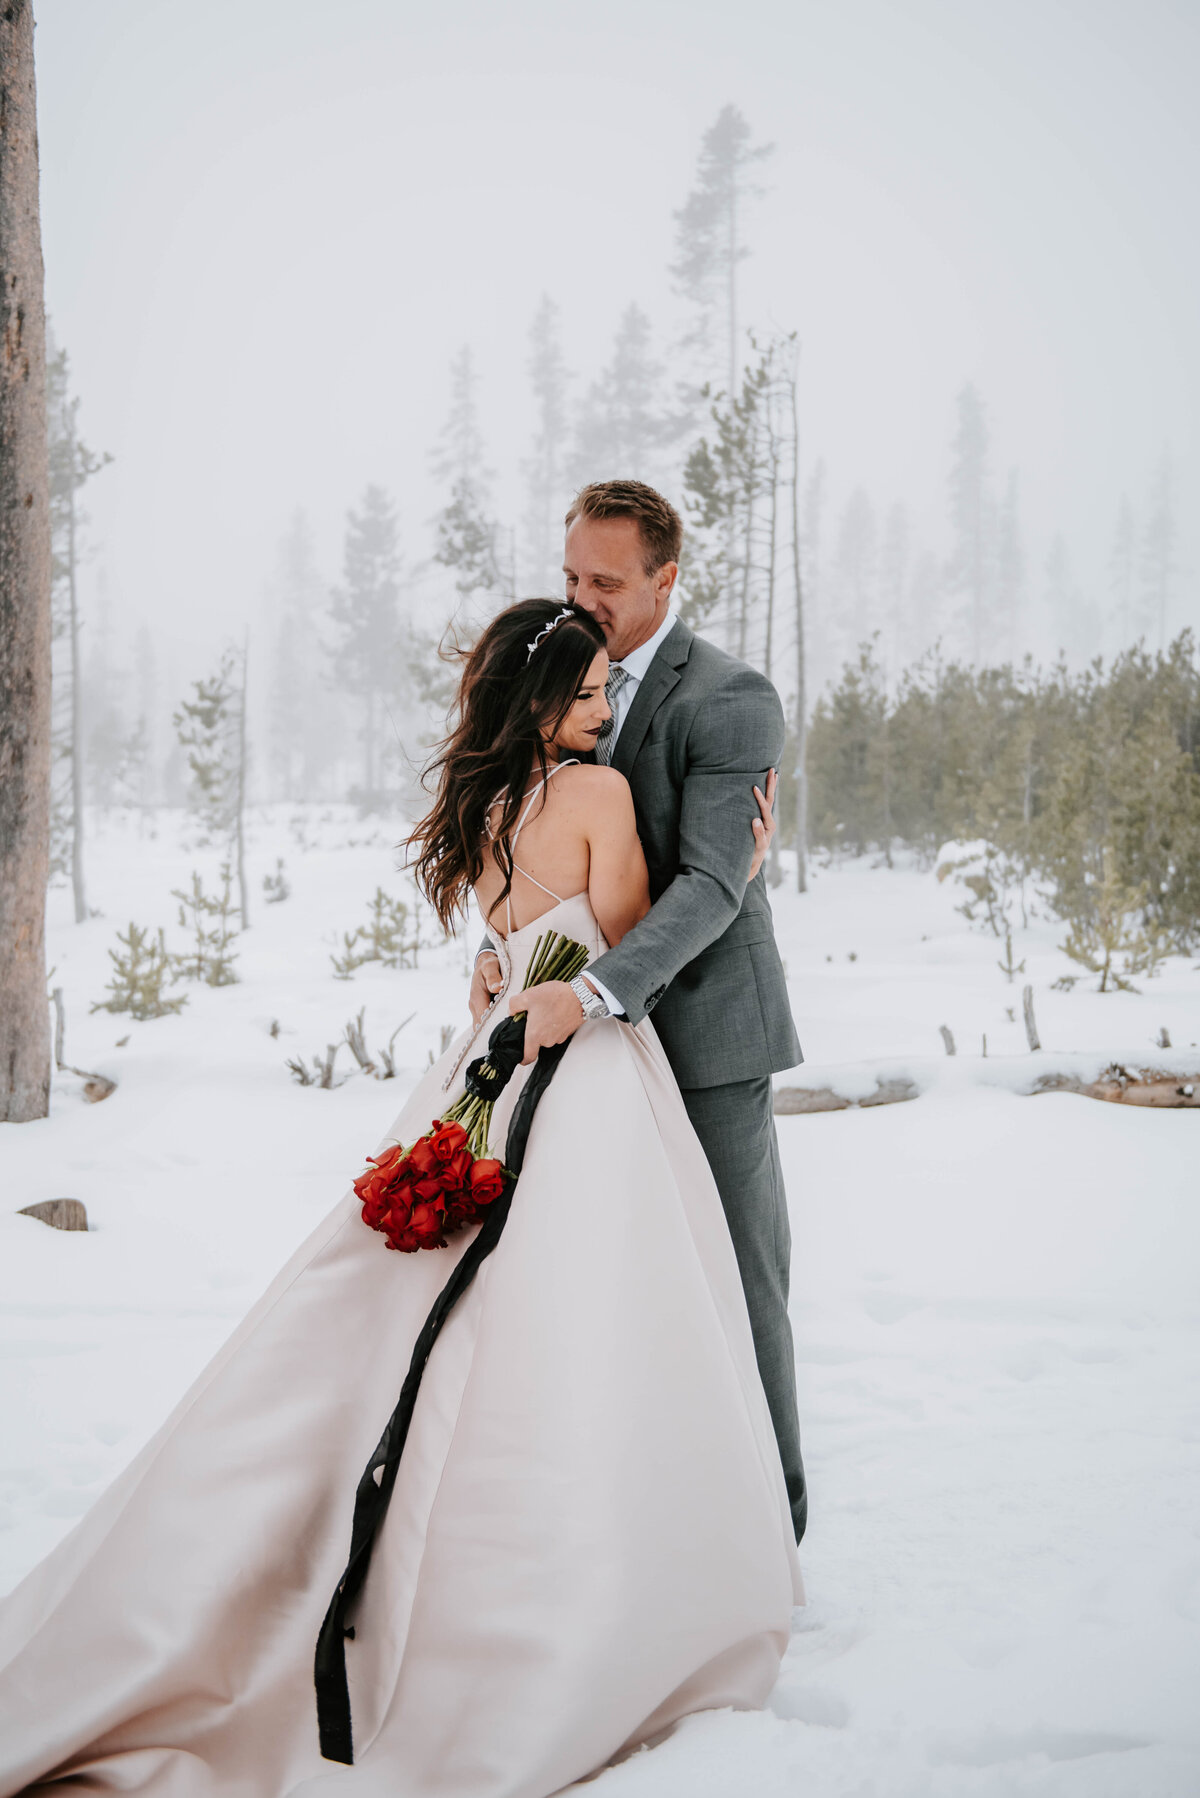 mt-bachelor-snow-winter-elopement-bend-oregon-wedding-photographer-2297